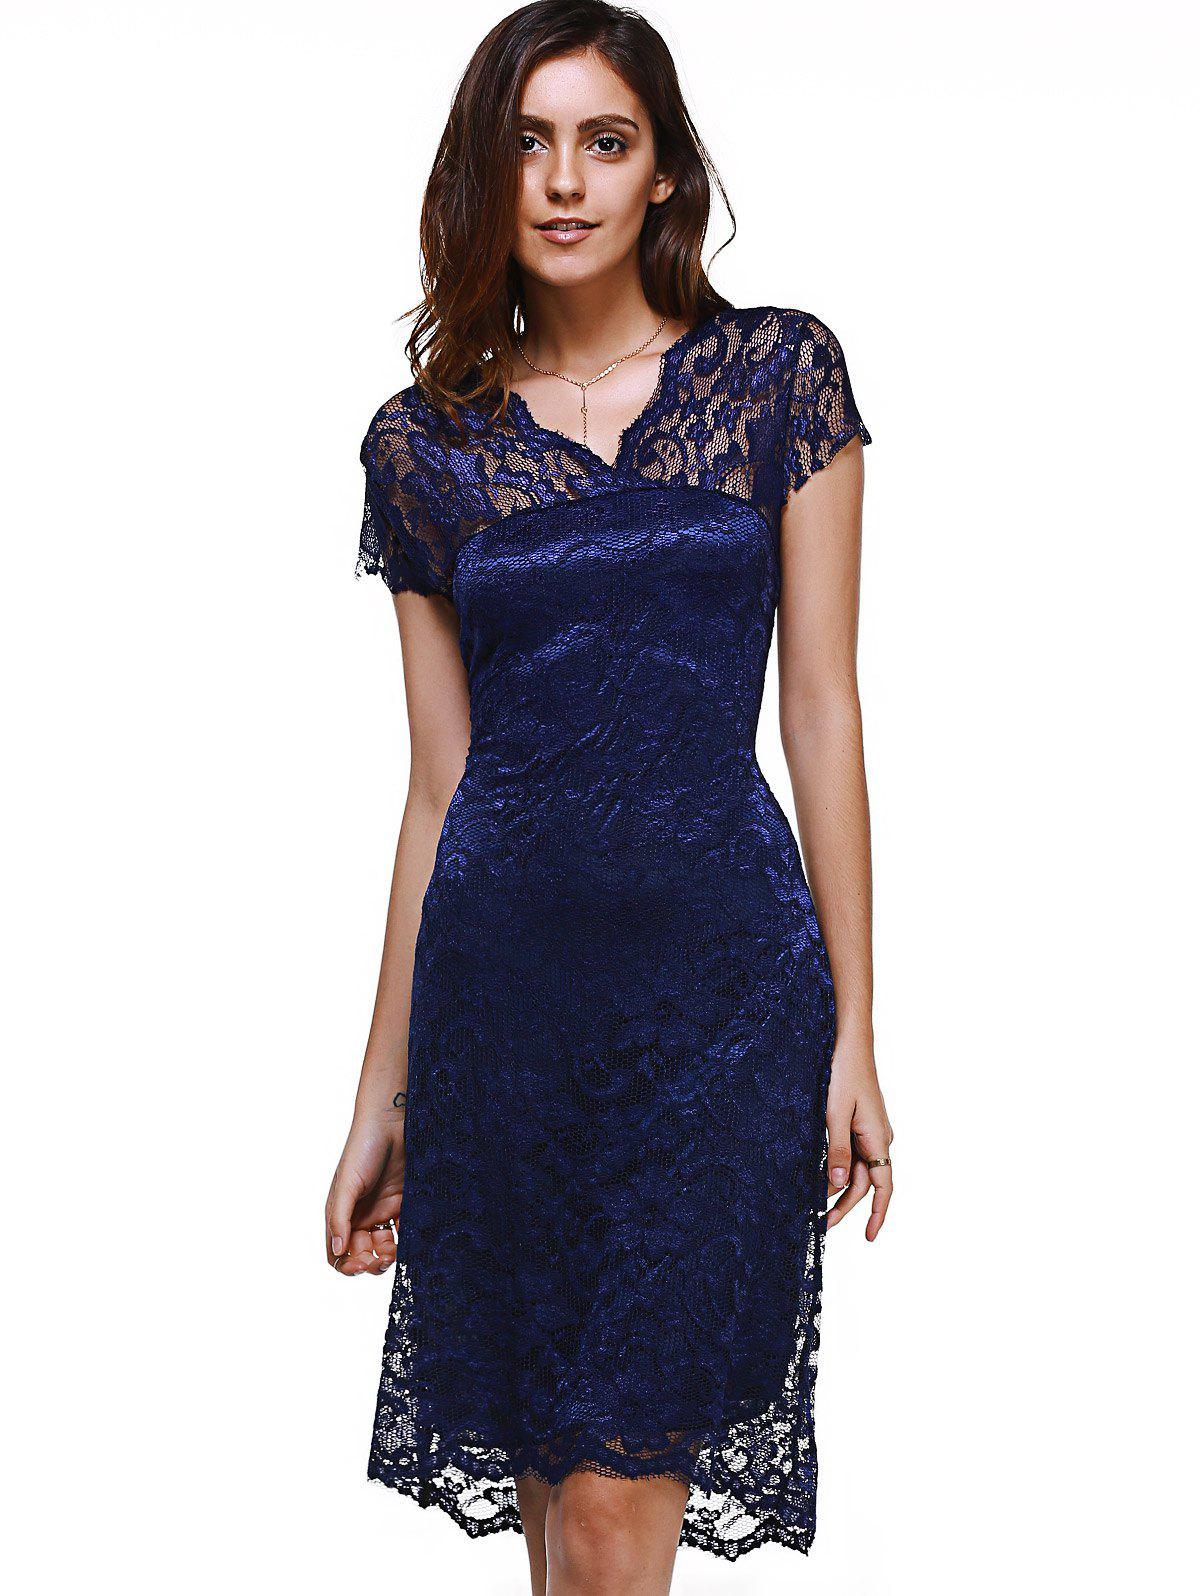 Sweet V-Neck Short Sleeve Women's Lace Dress - PURPLISH BLUE 2XL